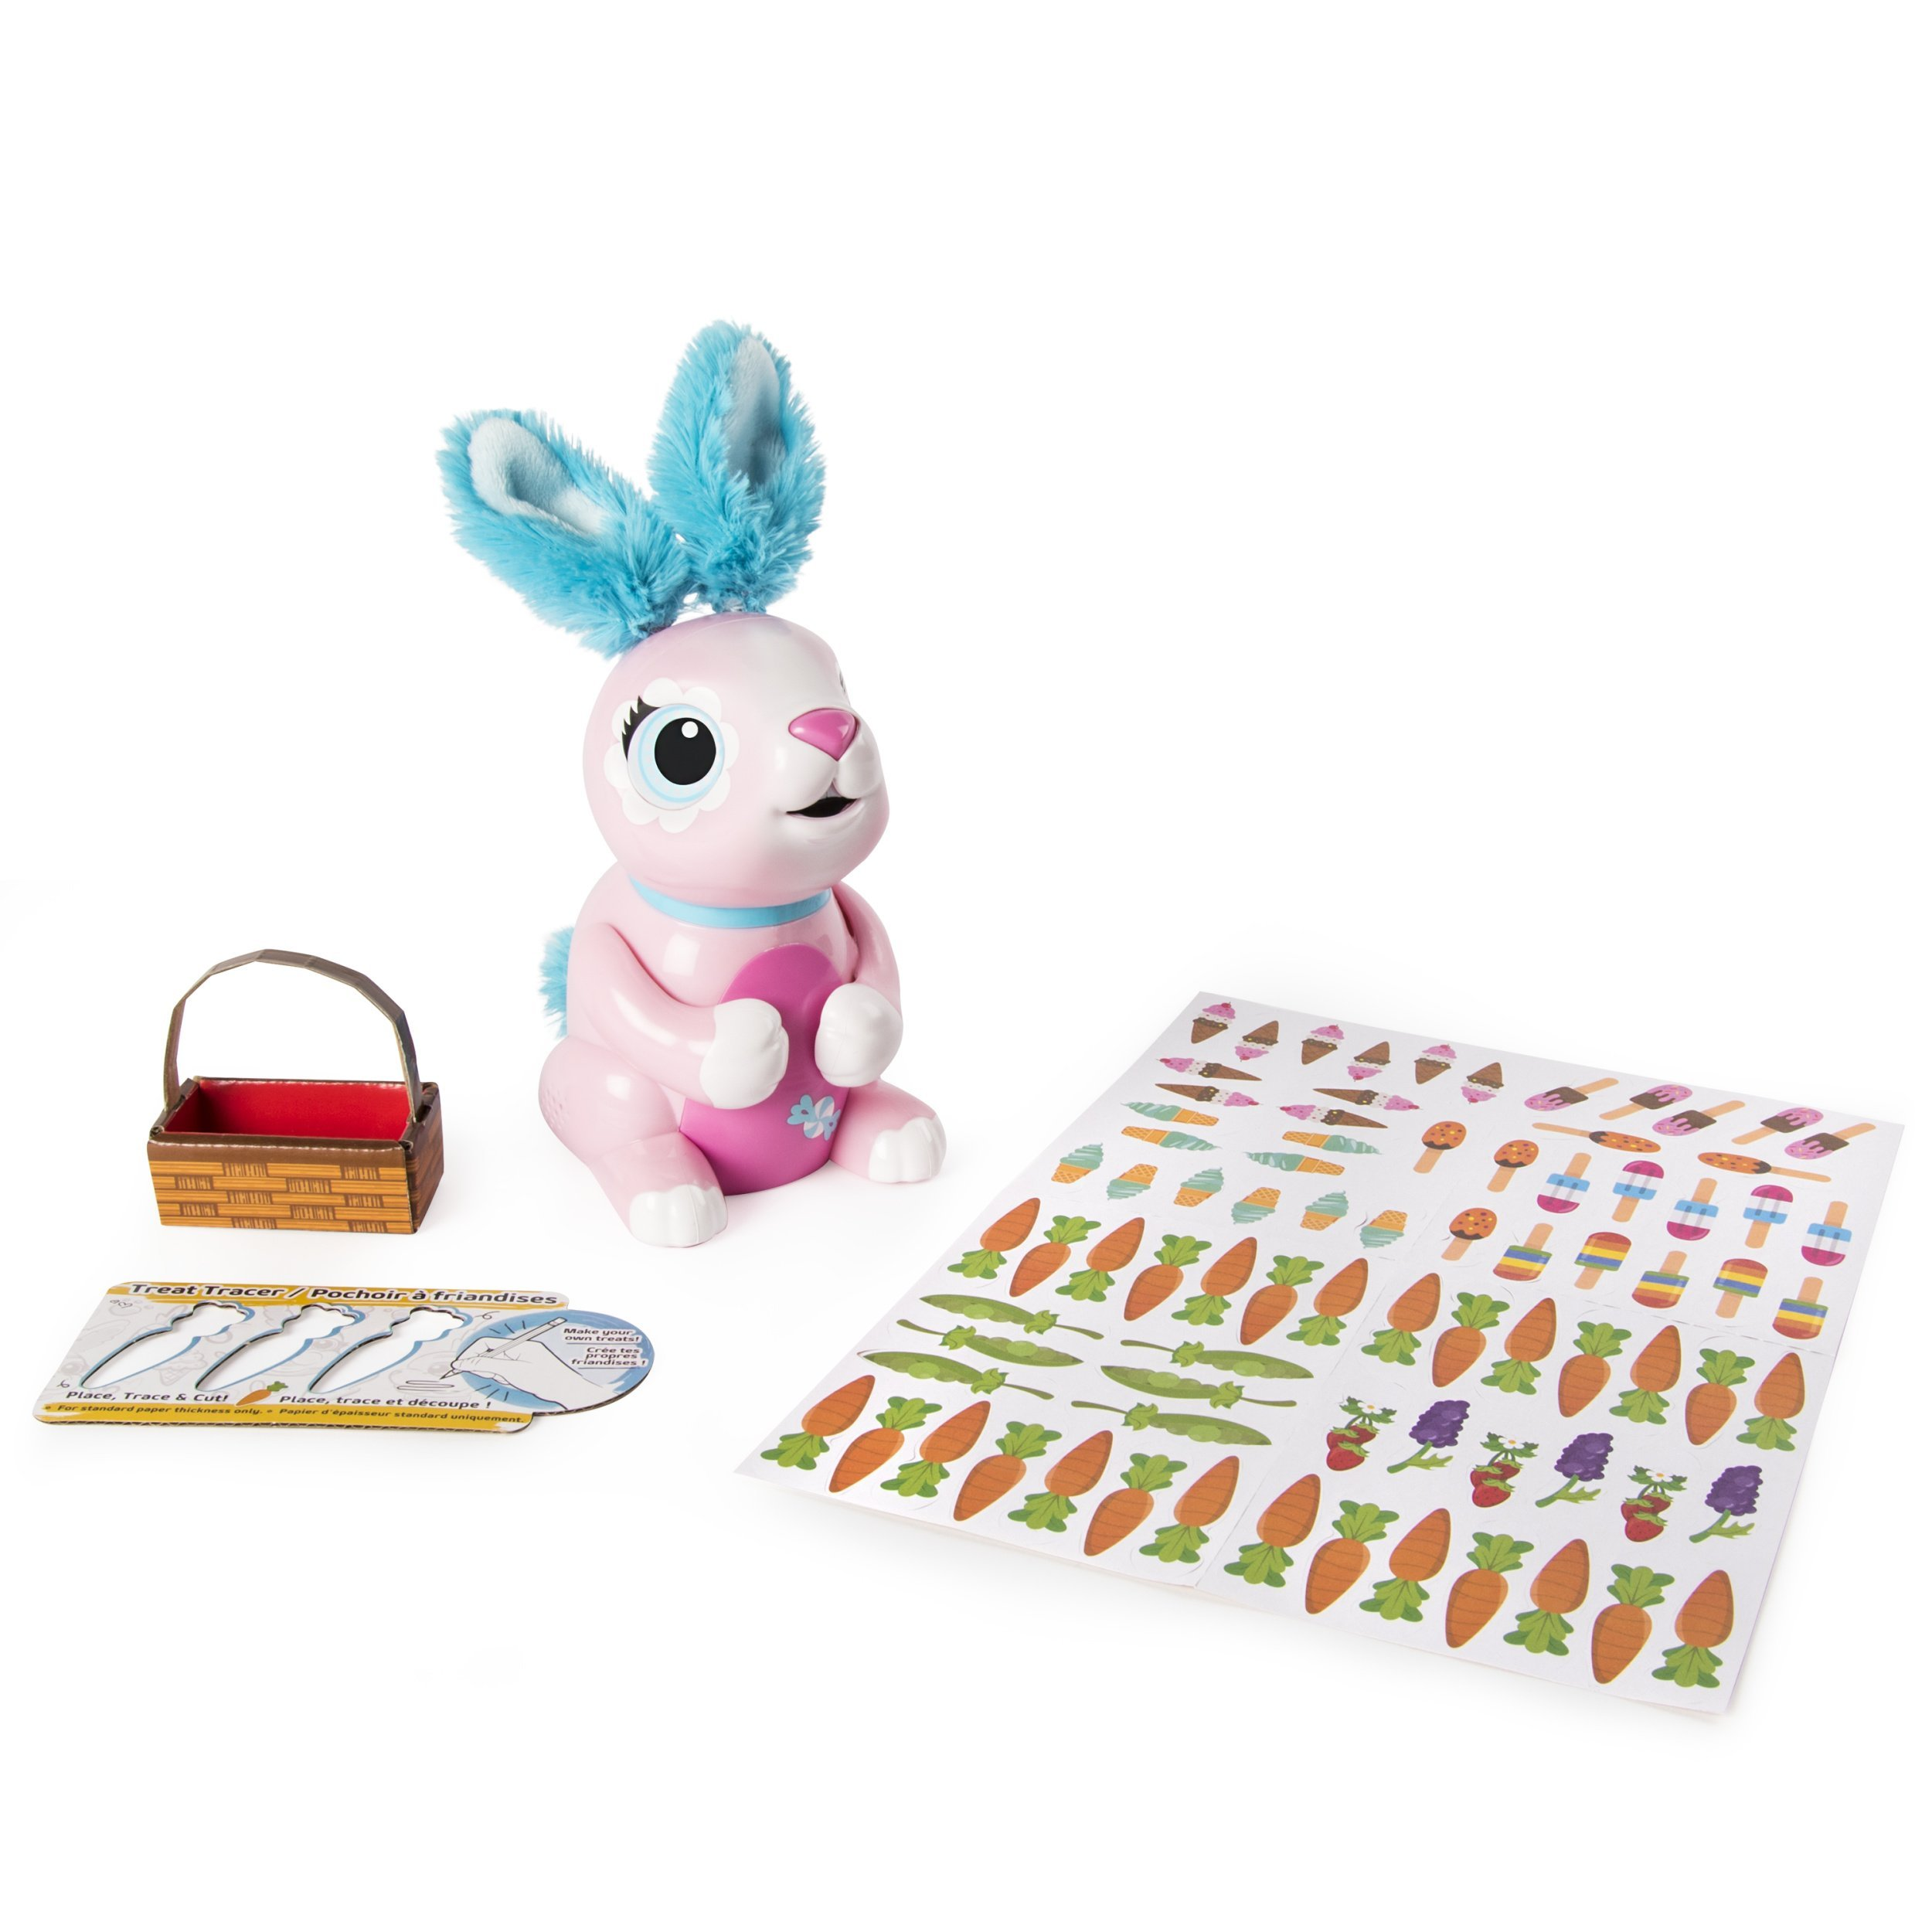 Zoomer Hungry Bunnies Shreddy, Interactive Robotic Rabbit That Eats, Ages 5 & Up by Zoomer (Image #9)